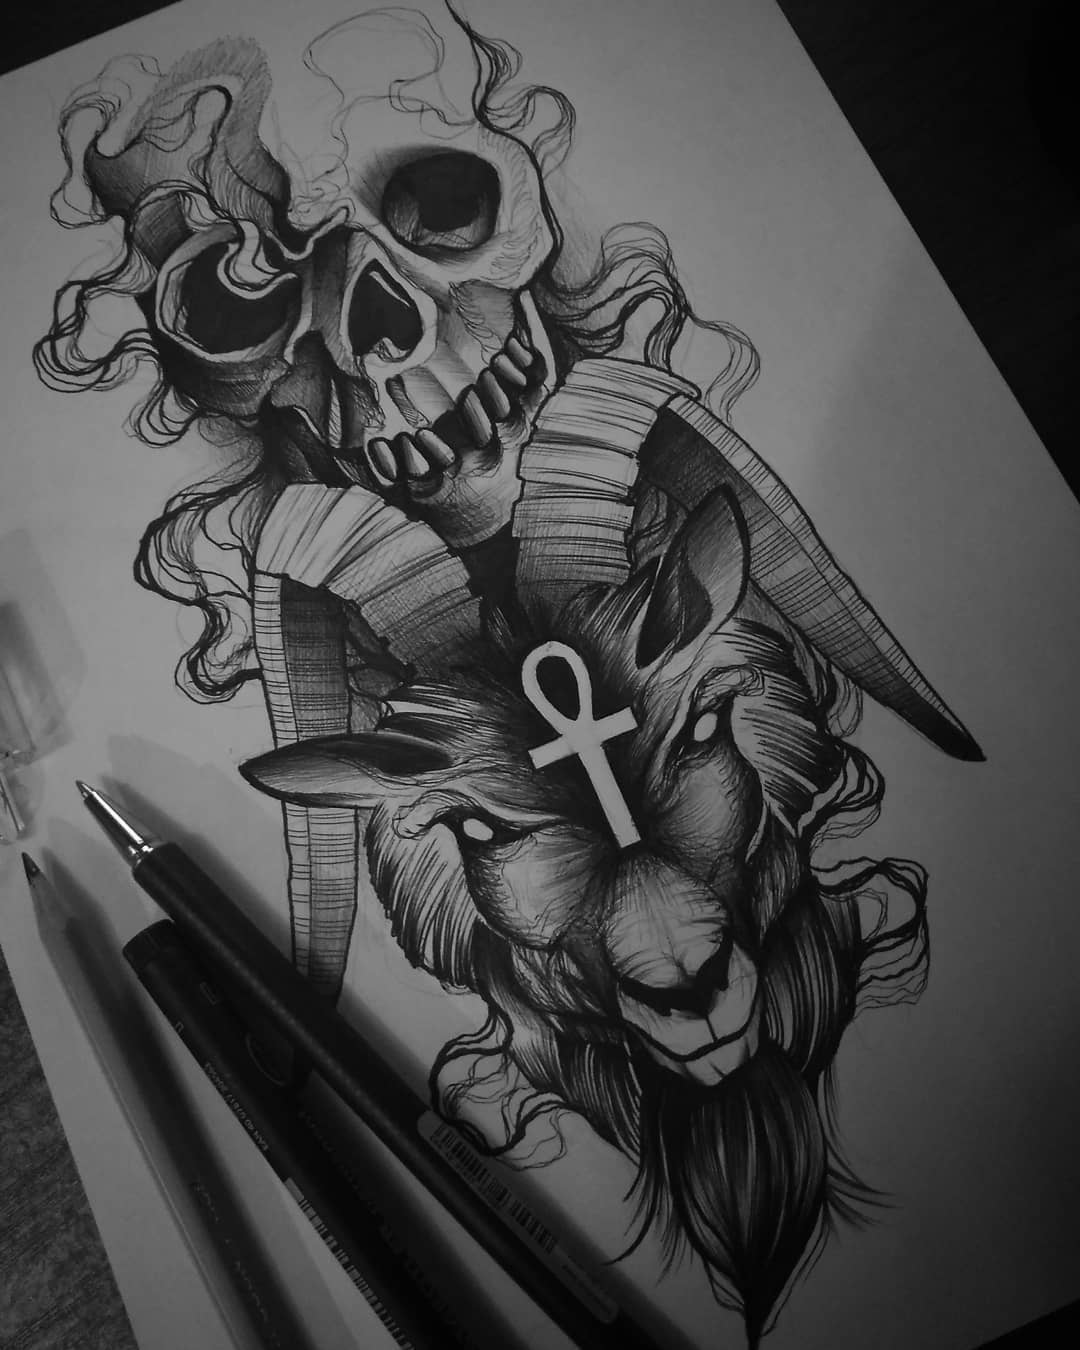 sketch for a tattoo in the form of a skull with a goat which is associated with the devil